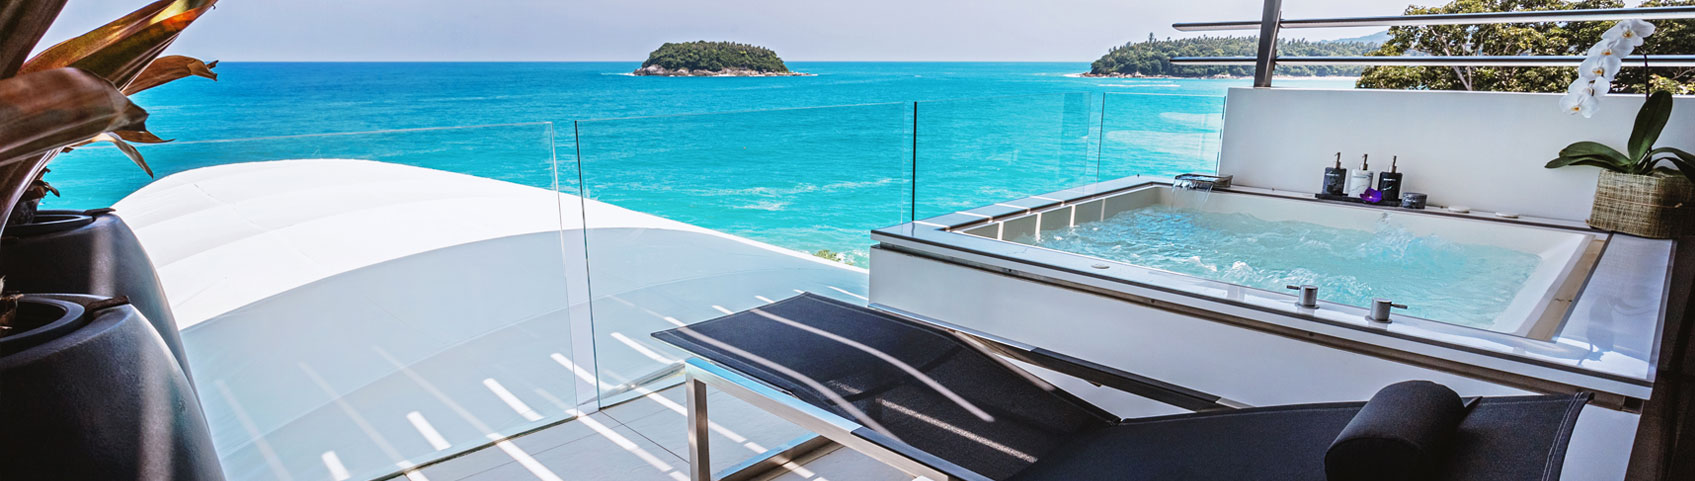 All Kata Rocks' oceanfront Sky Villas have spectacular views.